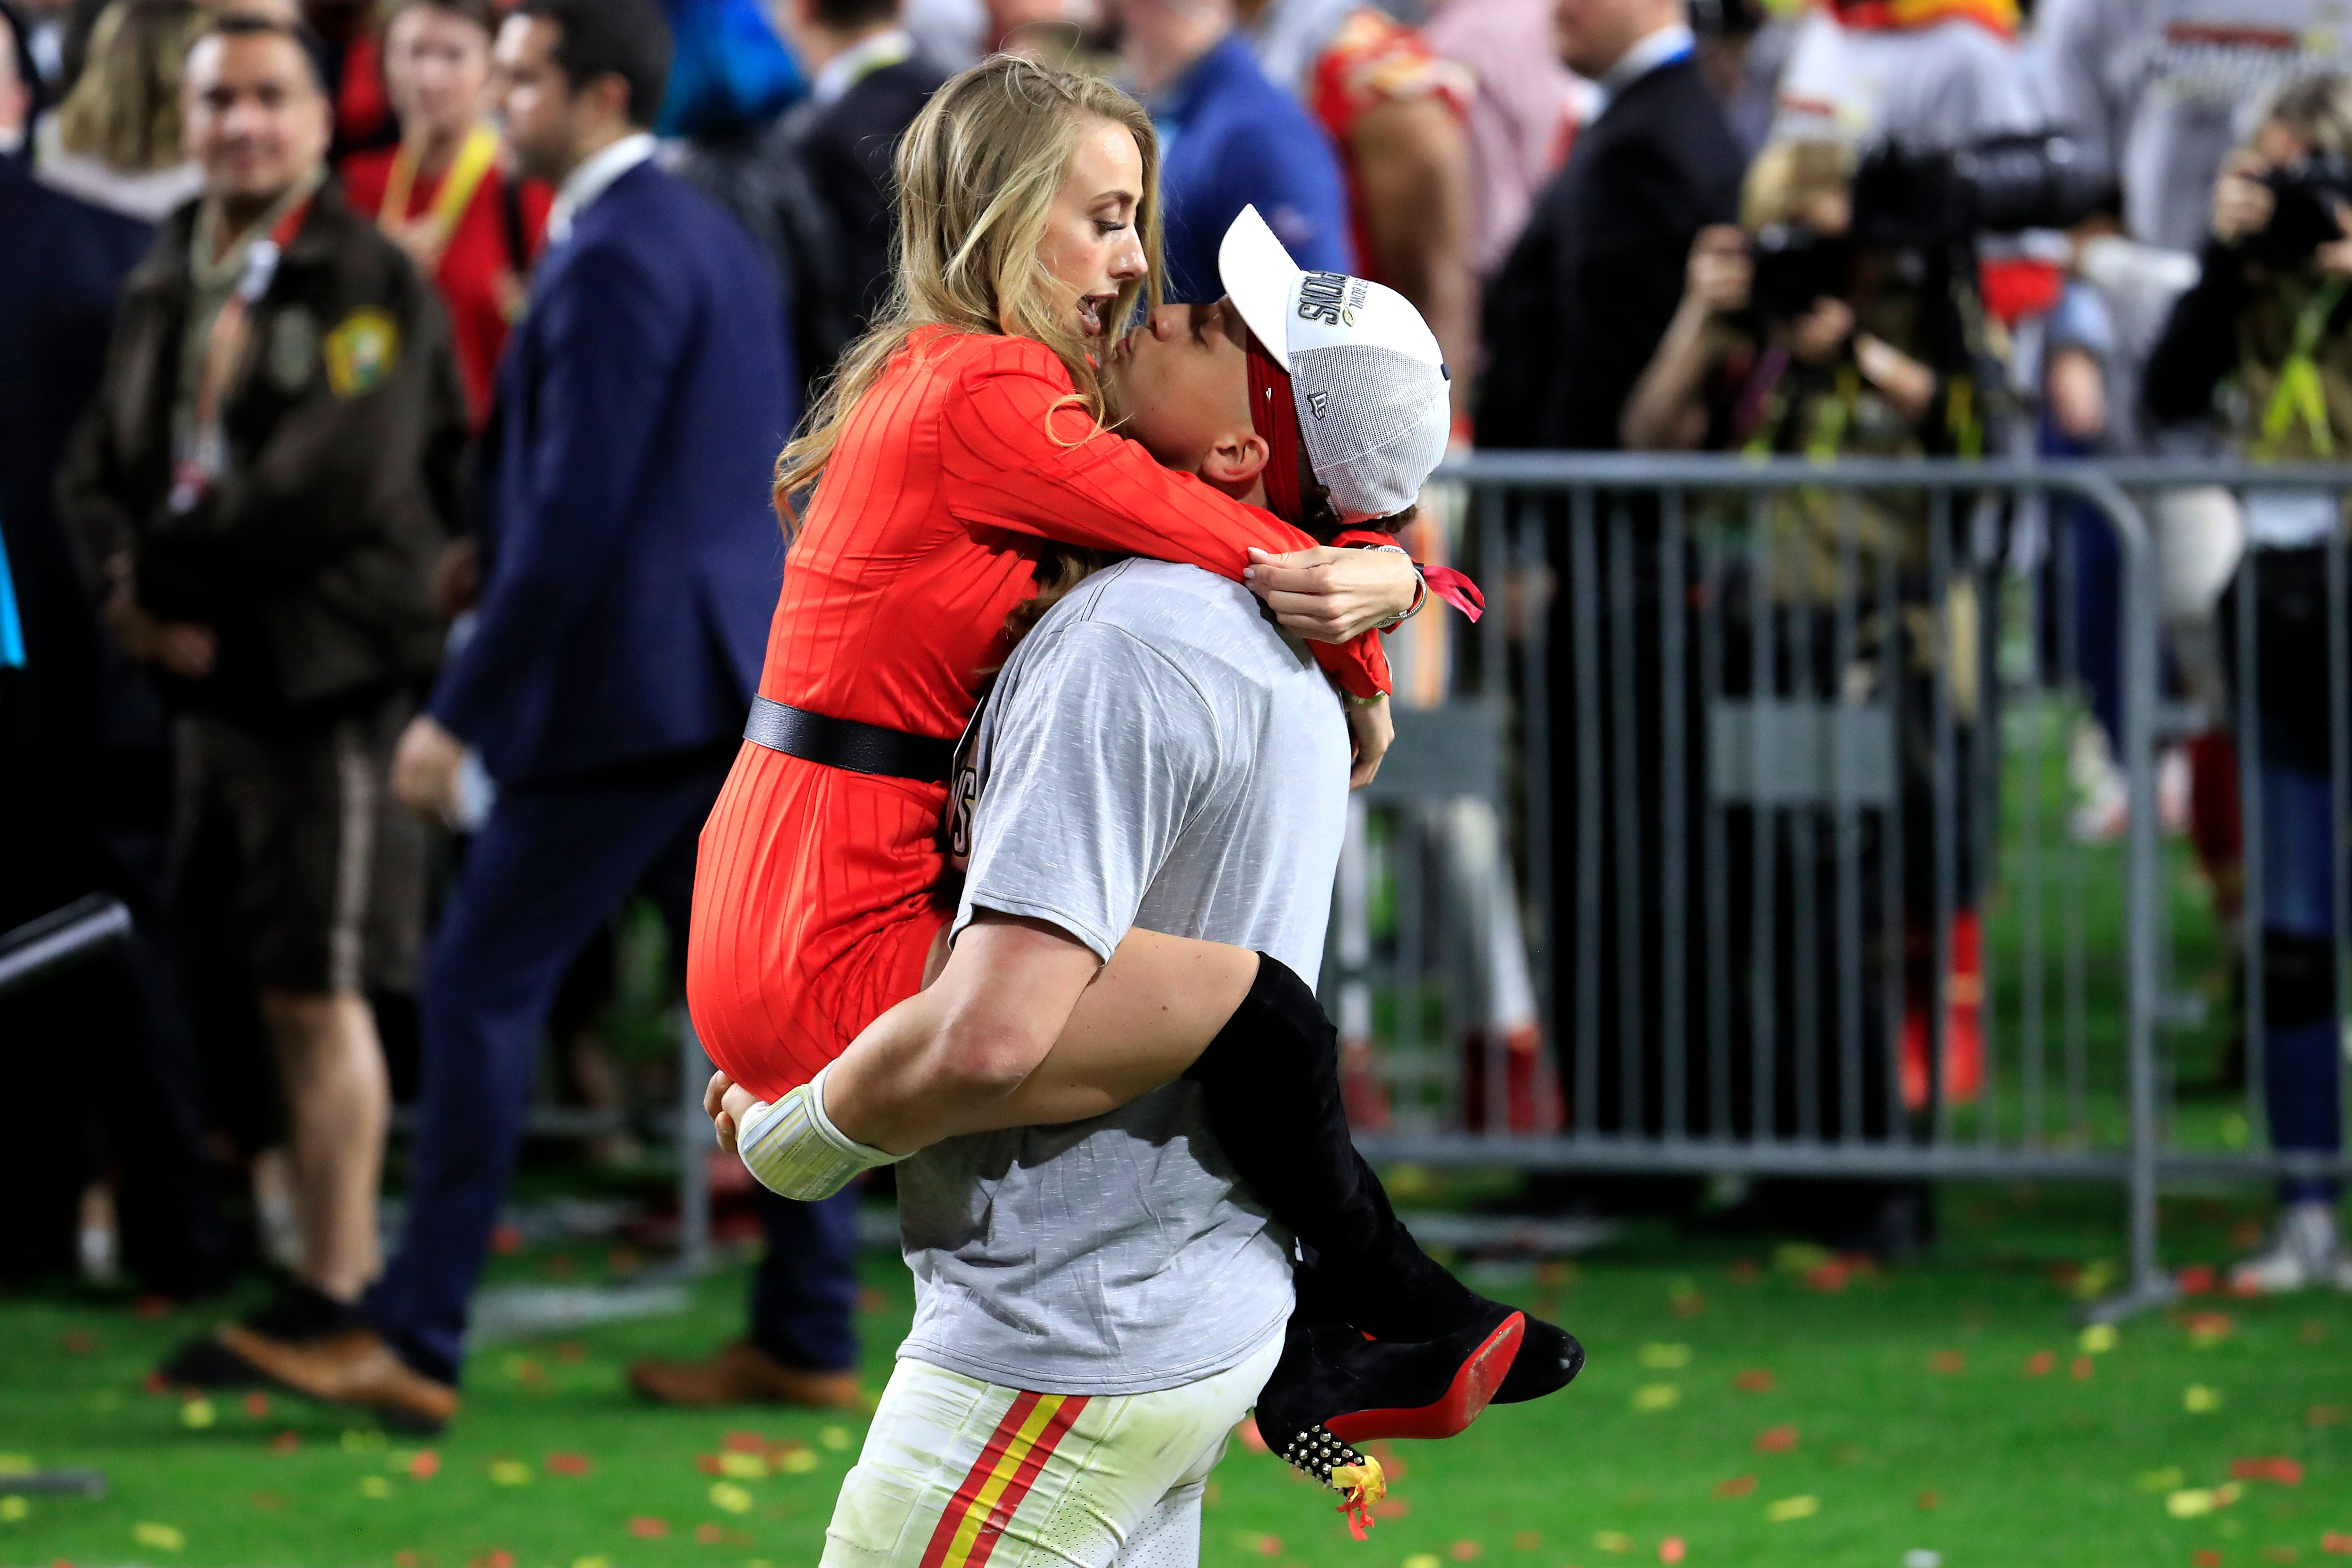 Patrick Mahomes and Brittany Matthews after defeating the San Francisco 49ers in Super Bowl LIV on February 02, 2020, in Miami, Florida. | Source: Getty Images